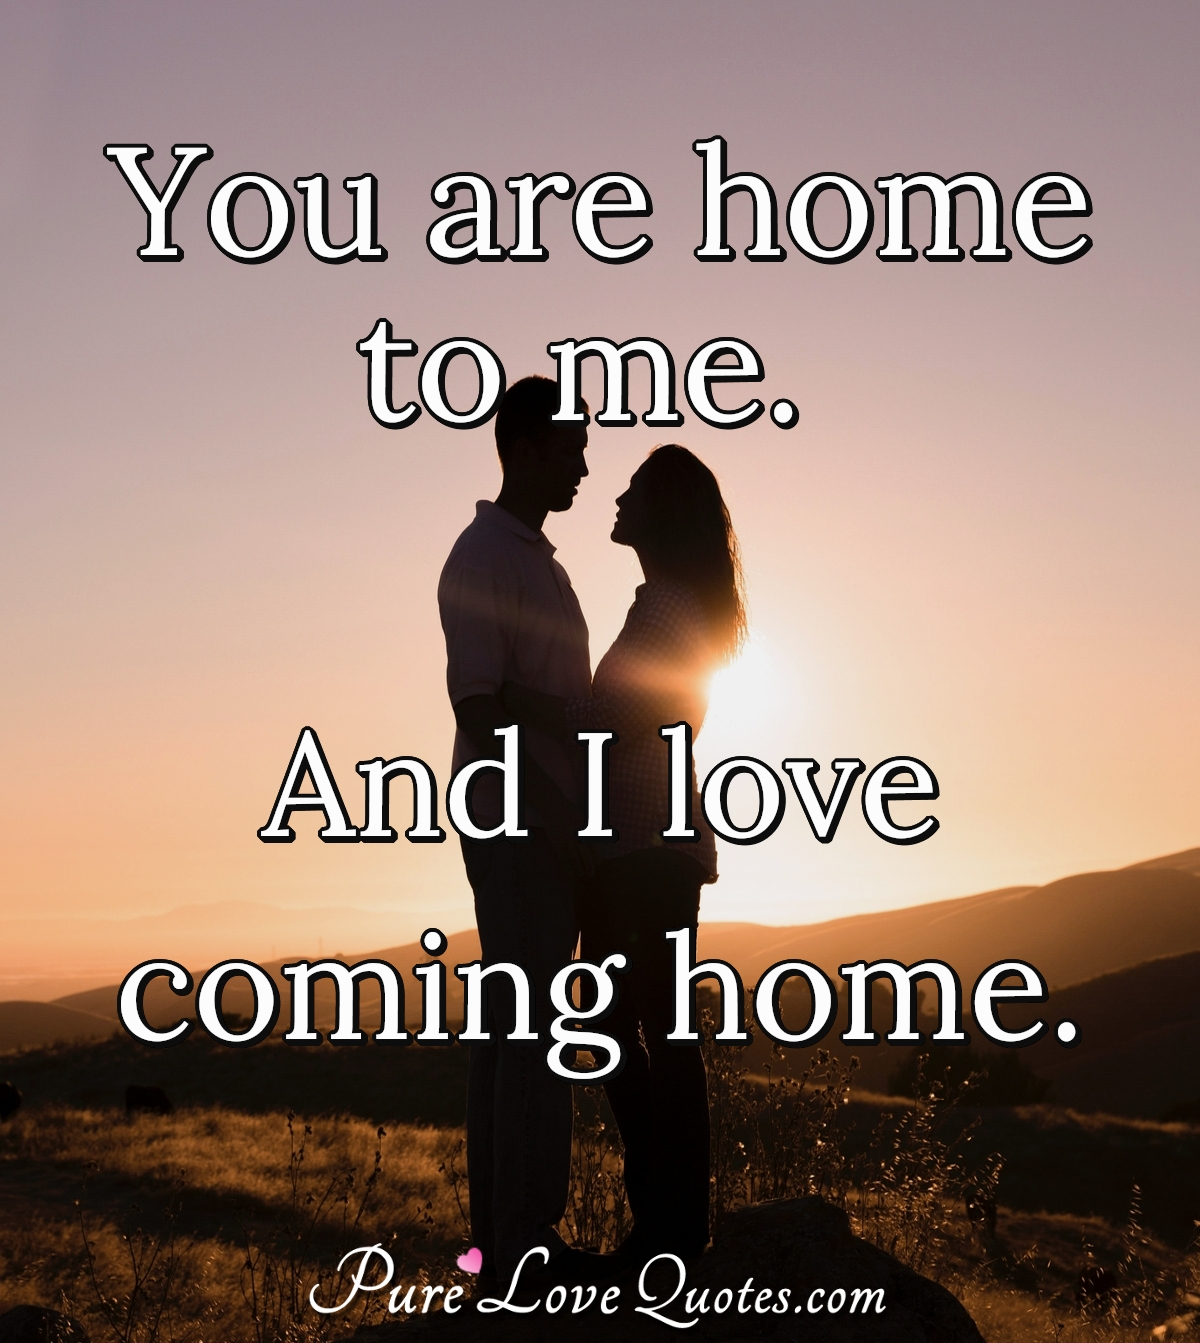 You are home to me, and I love coming home. - Anonymous